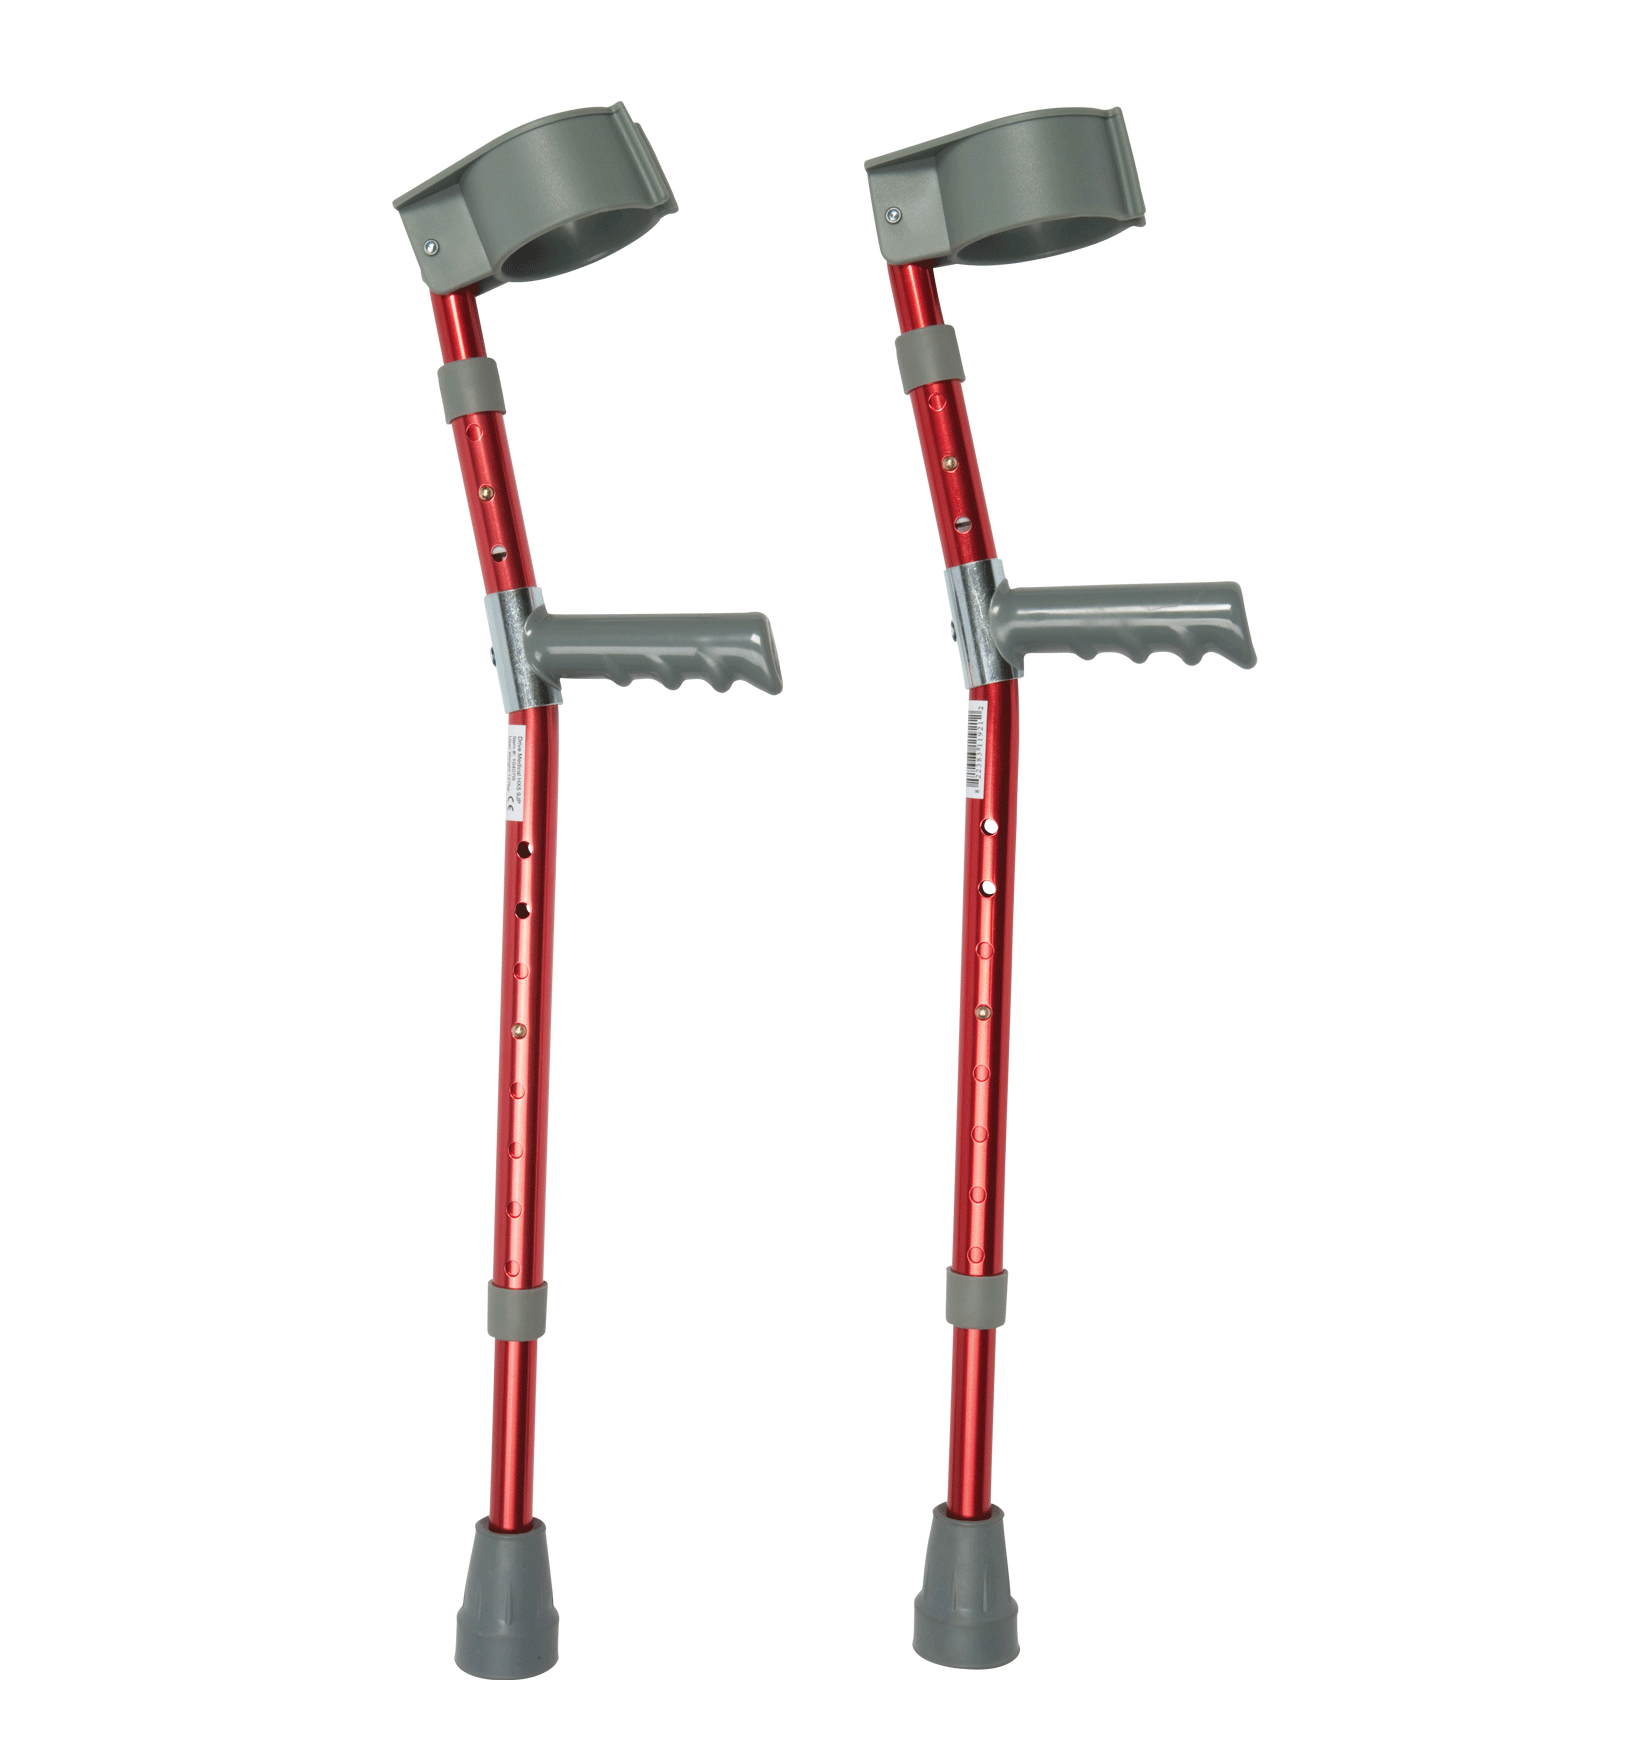 Crutches PNG